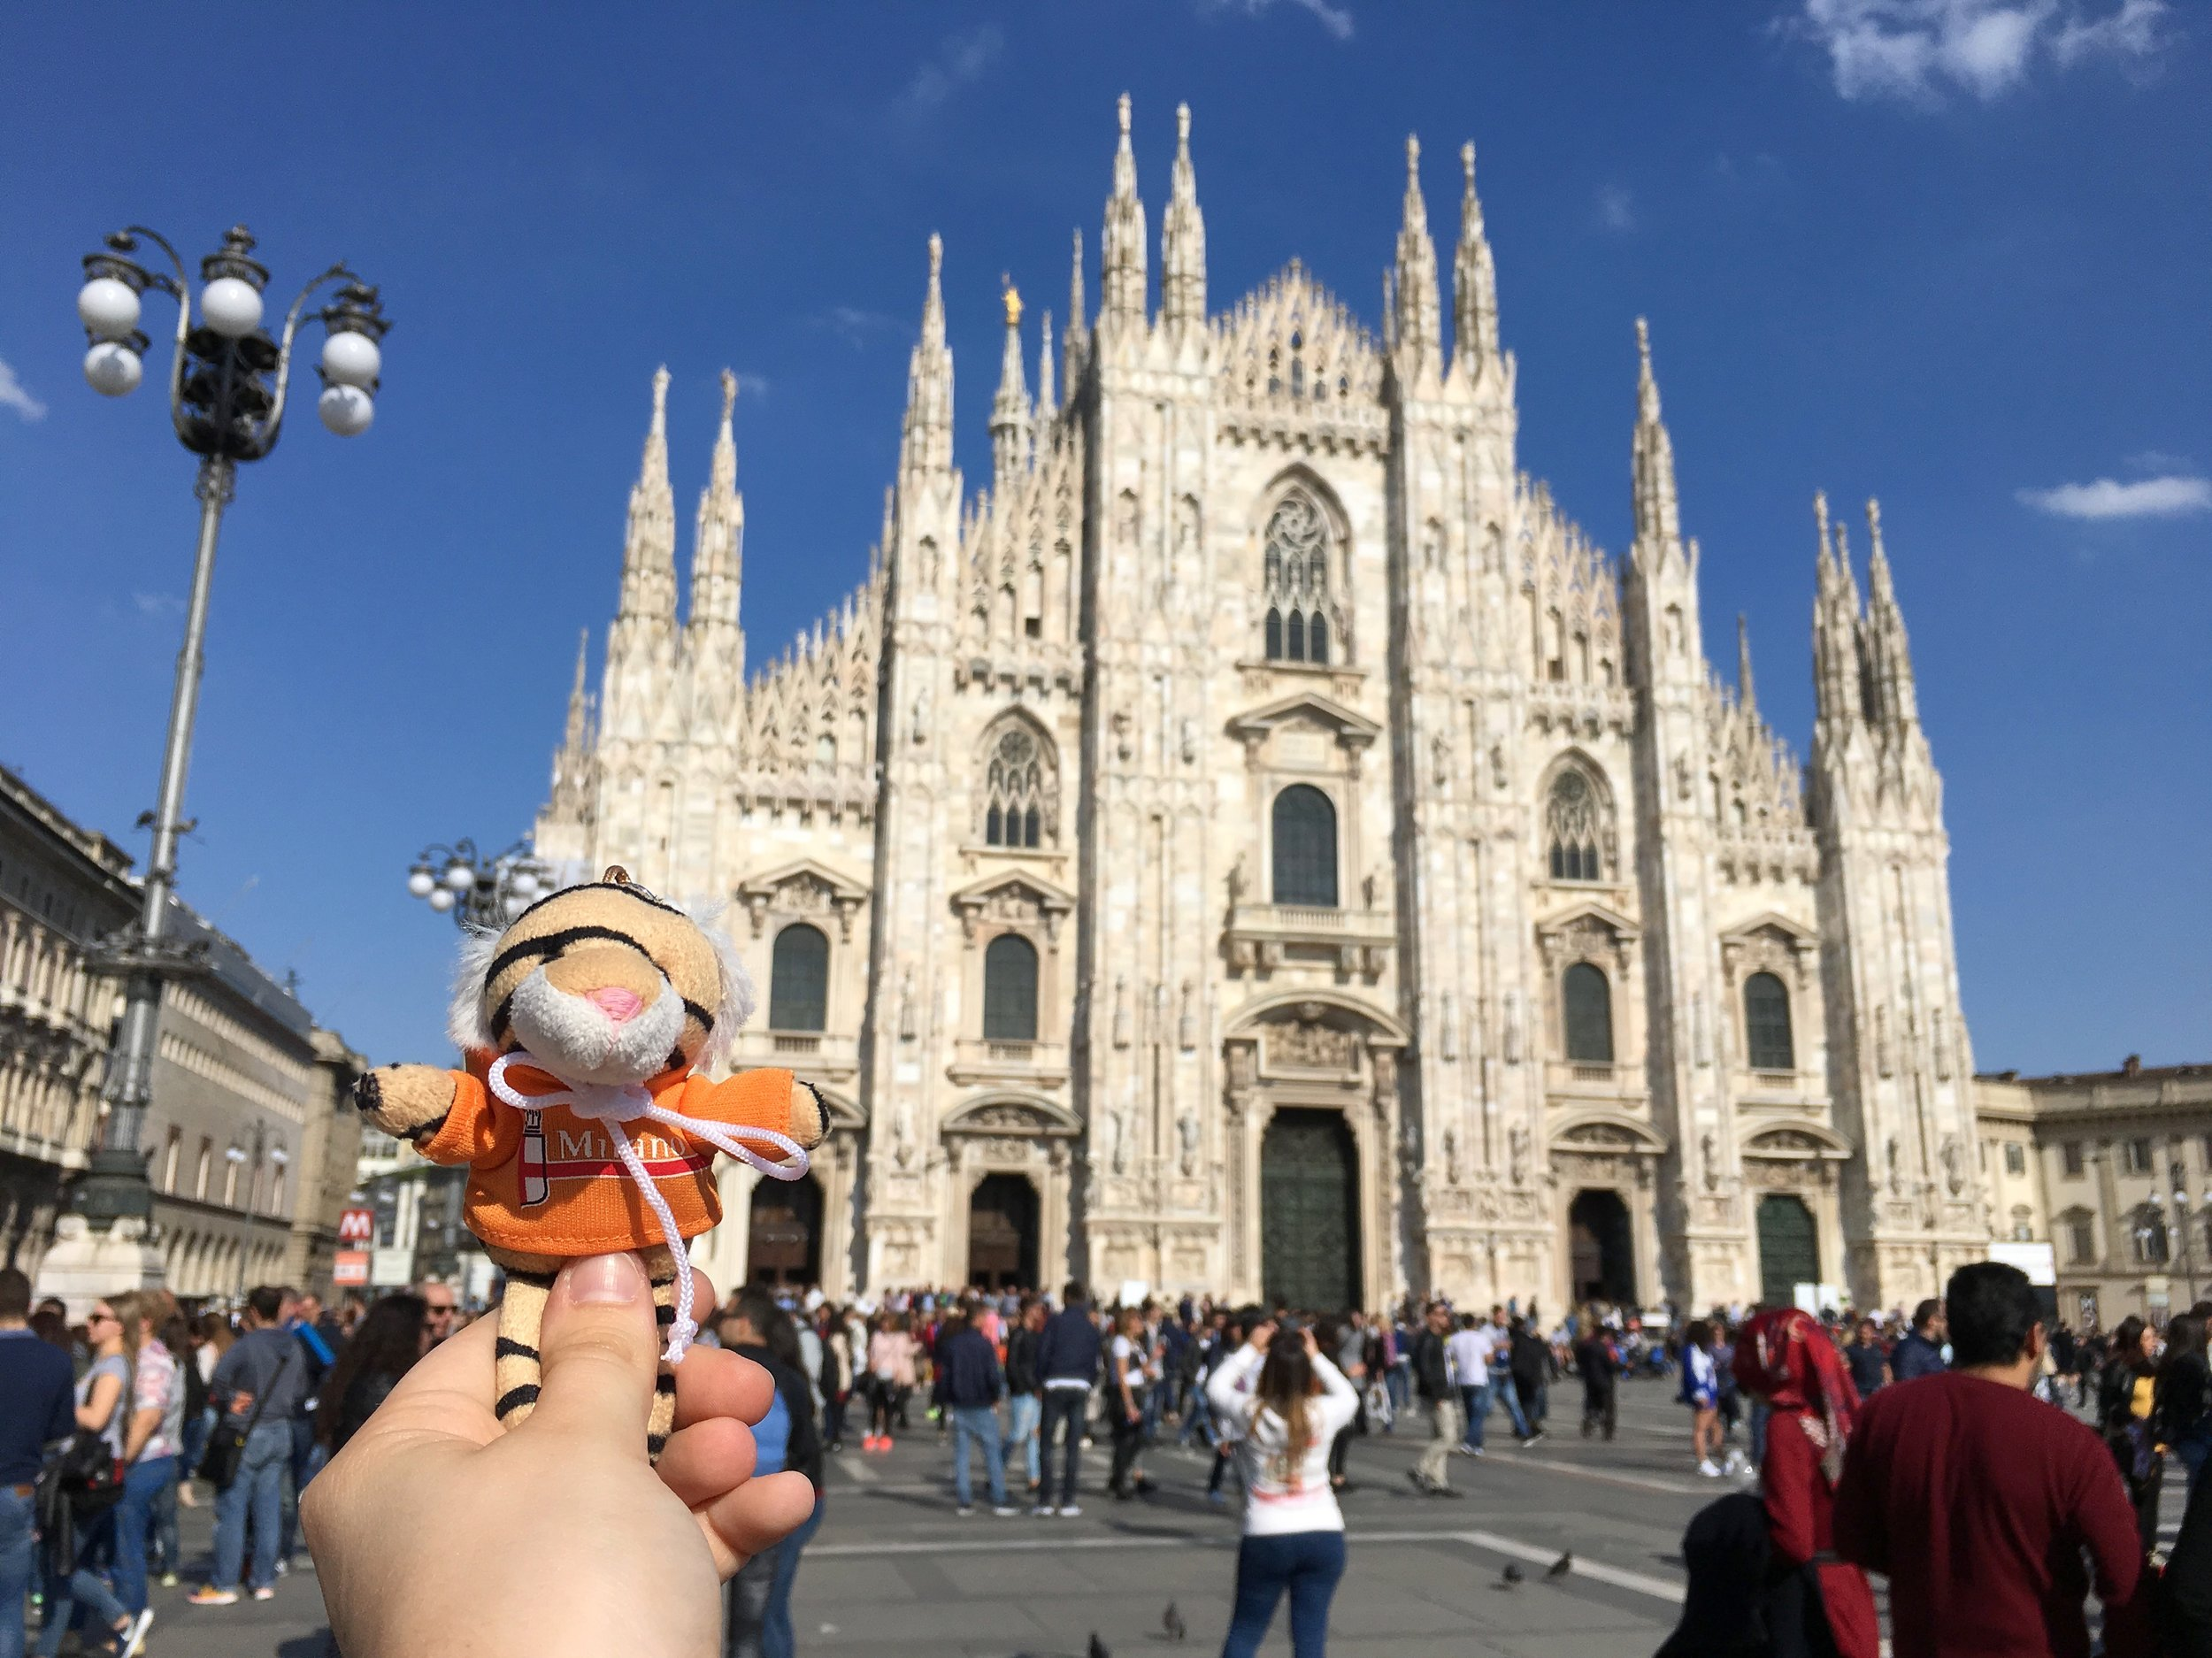 Europe - I lived in Milan, Italy from January 2017- May 2017. Click the button below to see pictures of my travels of around Italy and to seven other countries!